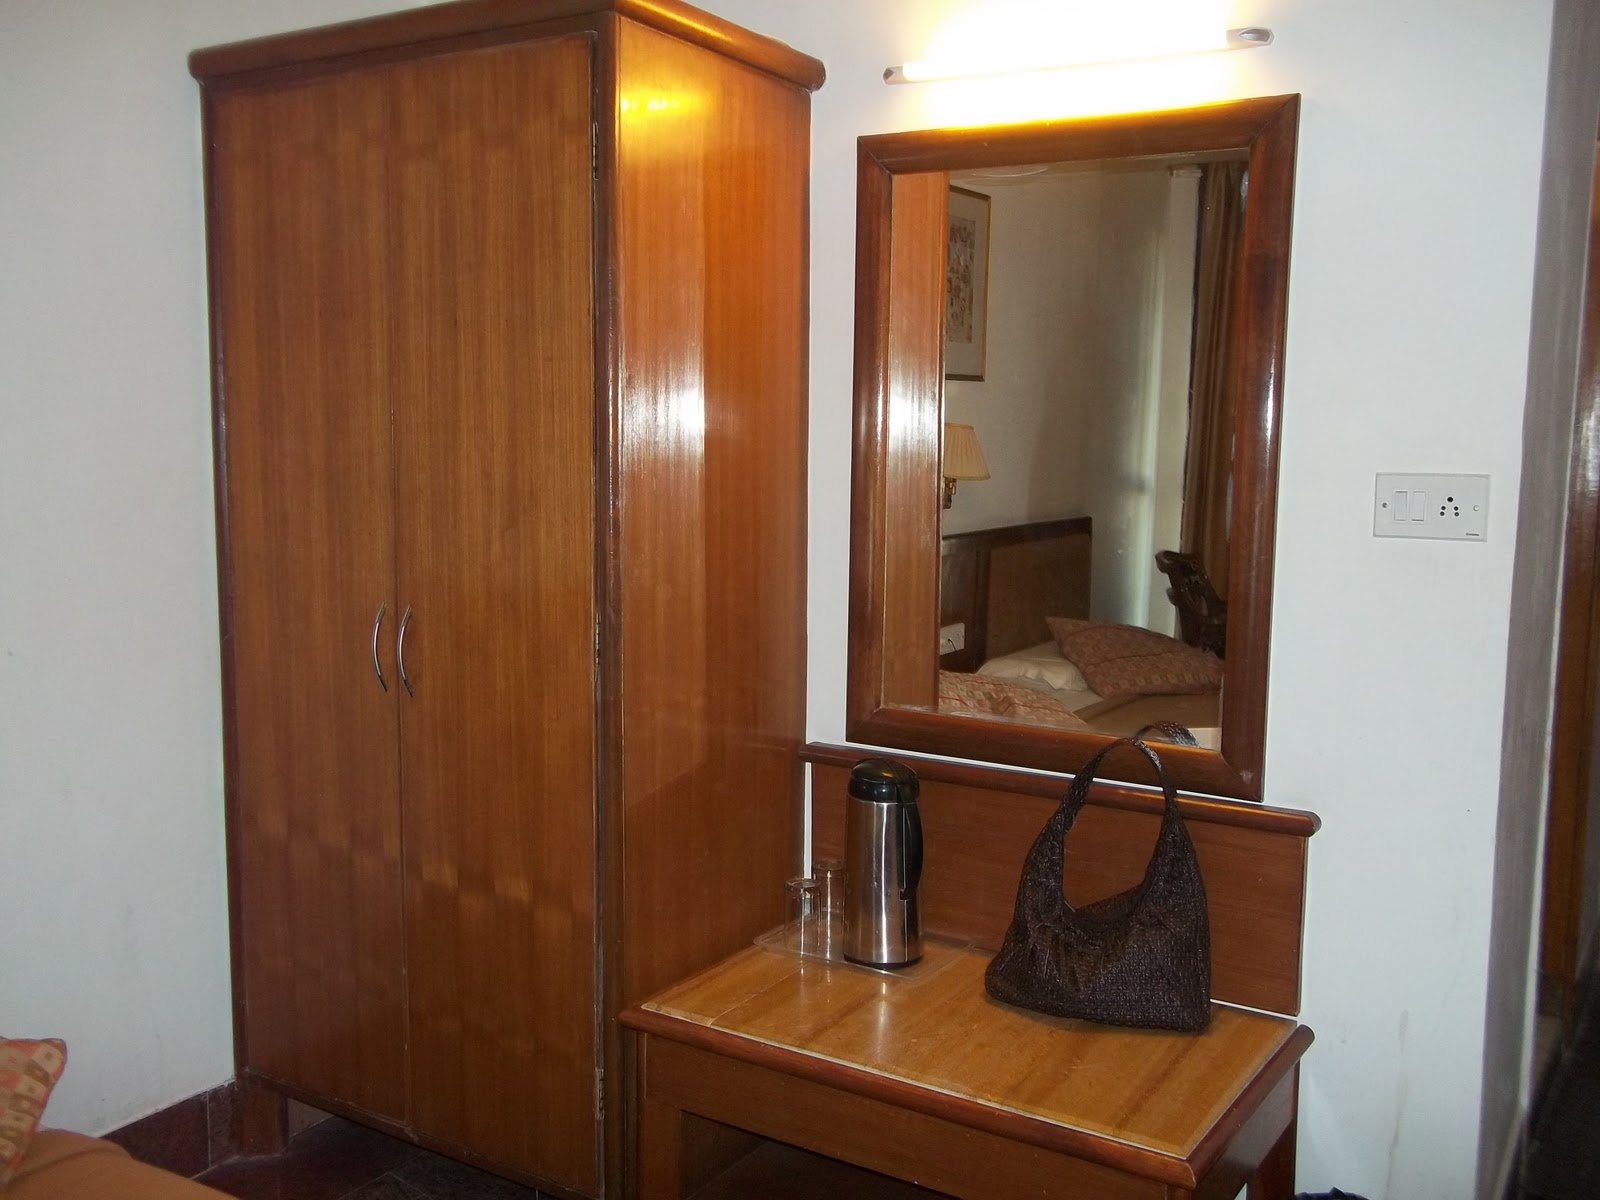 Image result for bedroom mirror india